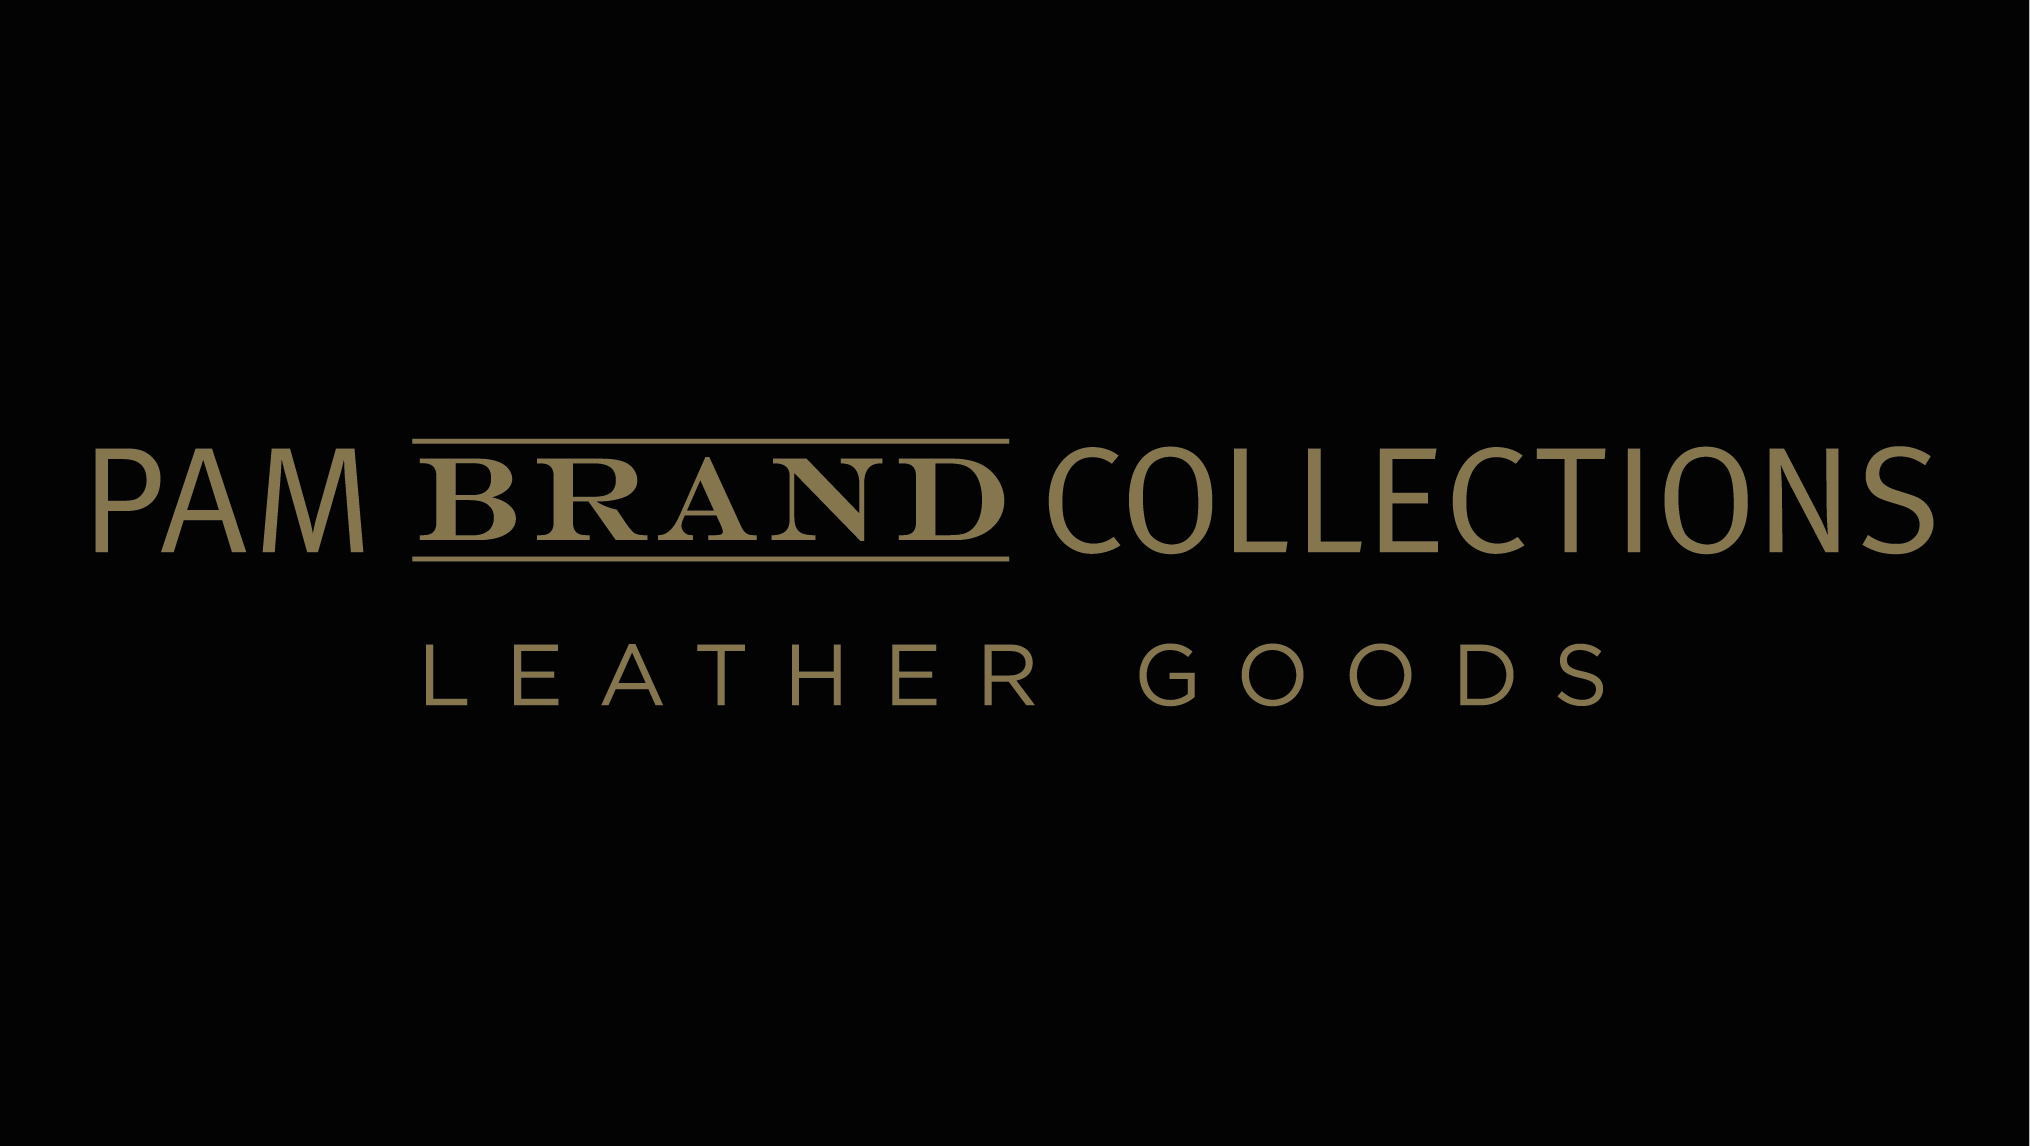 Brand Collection Leather Goods